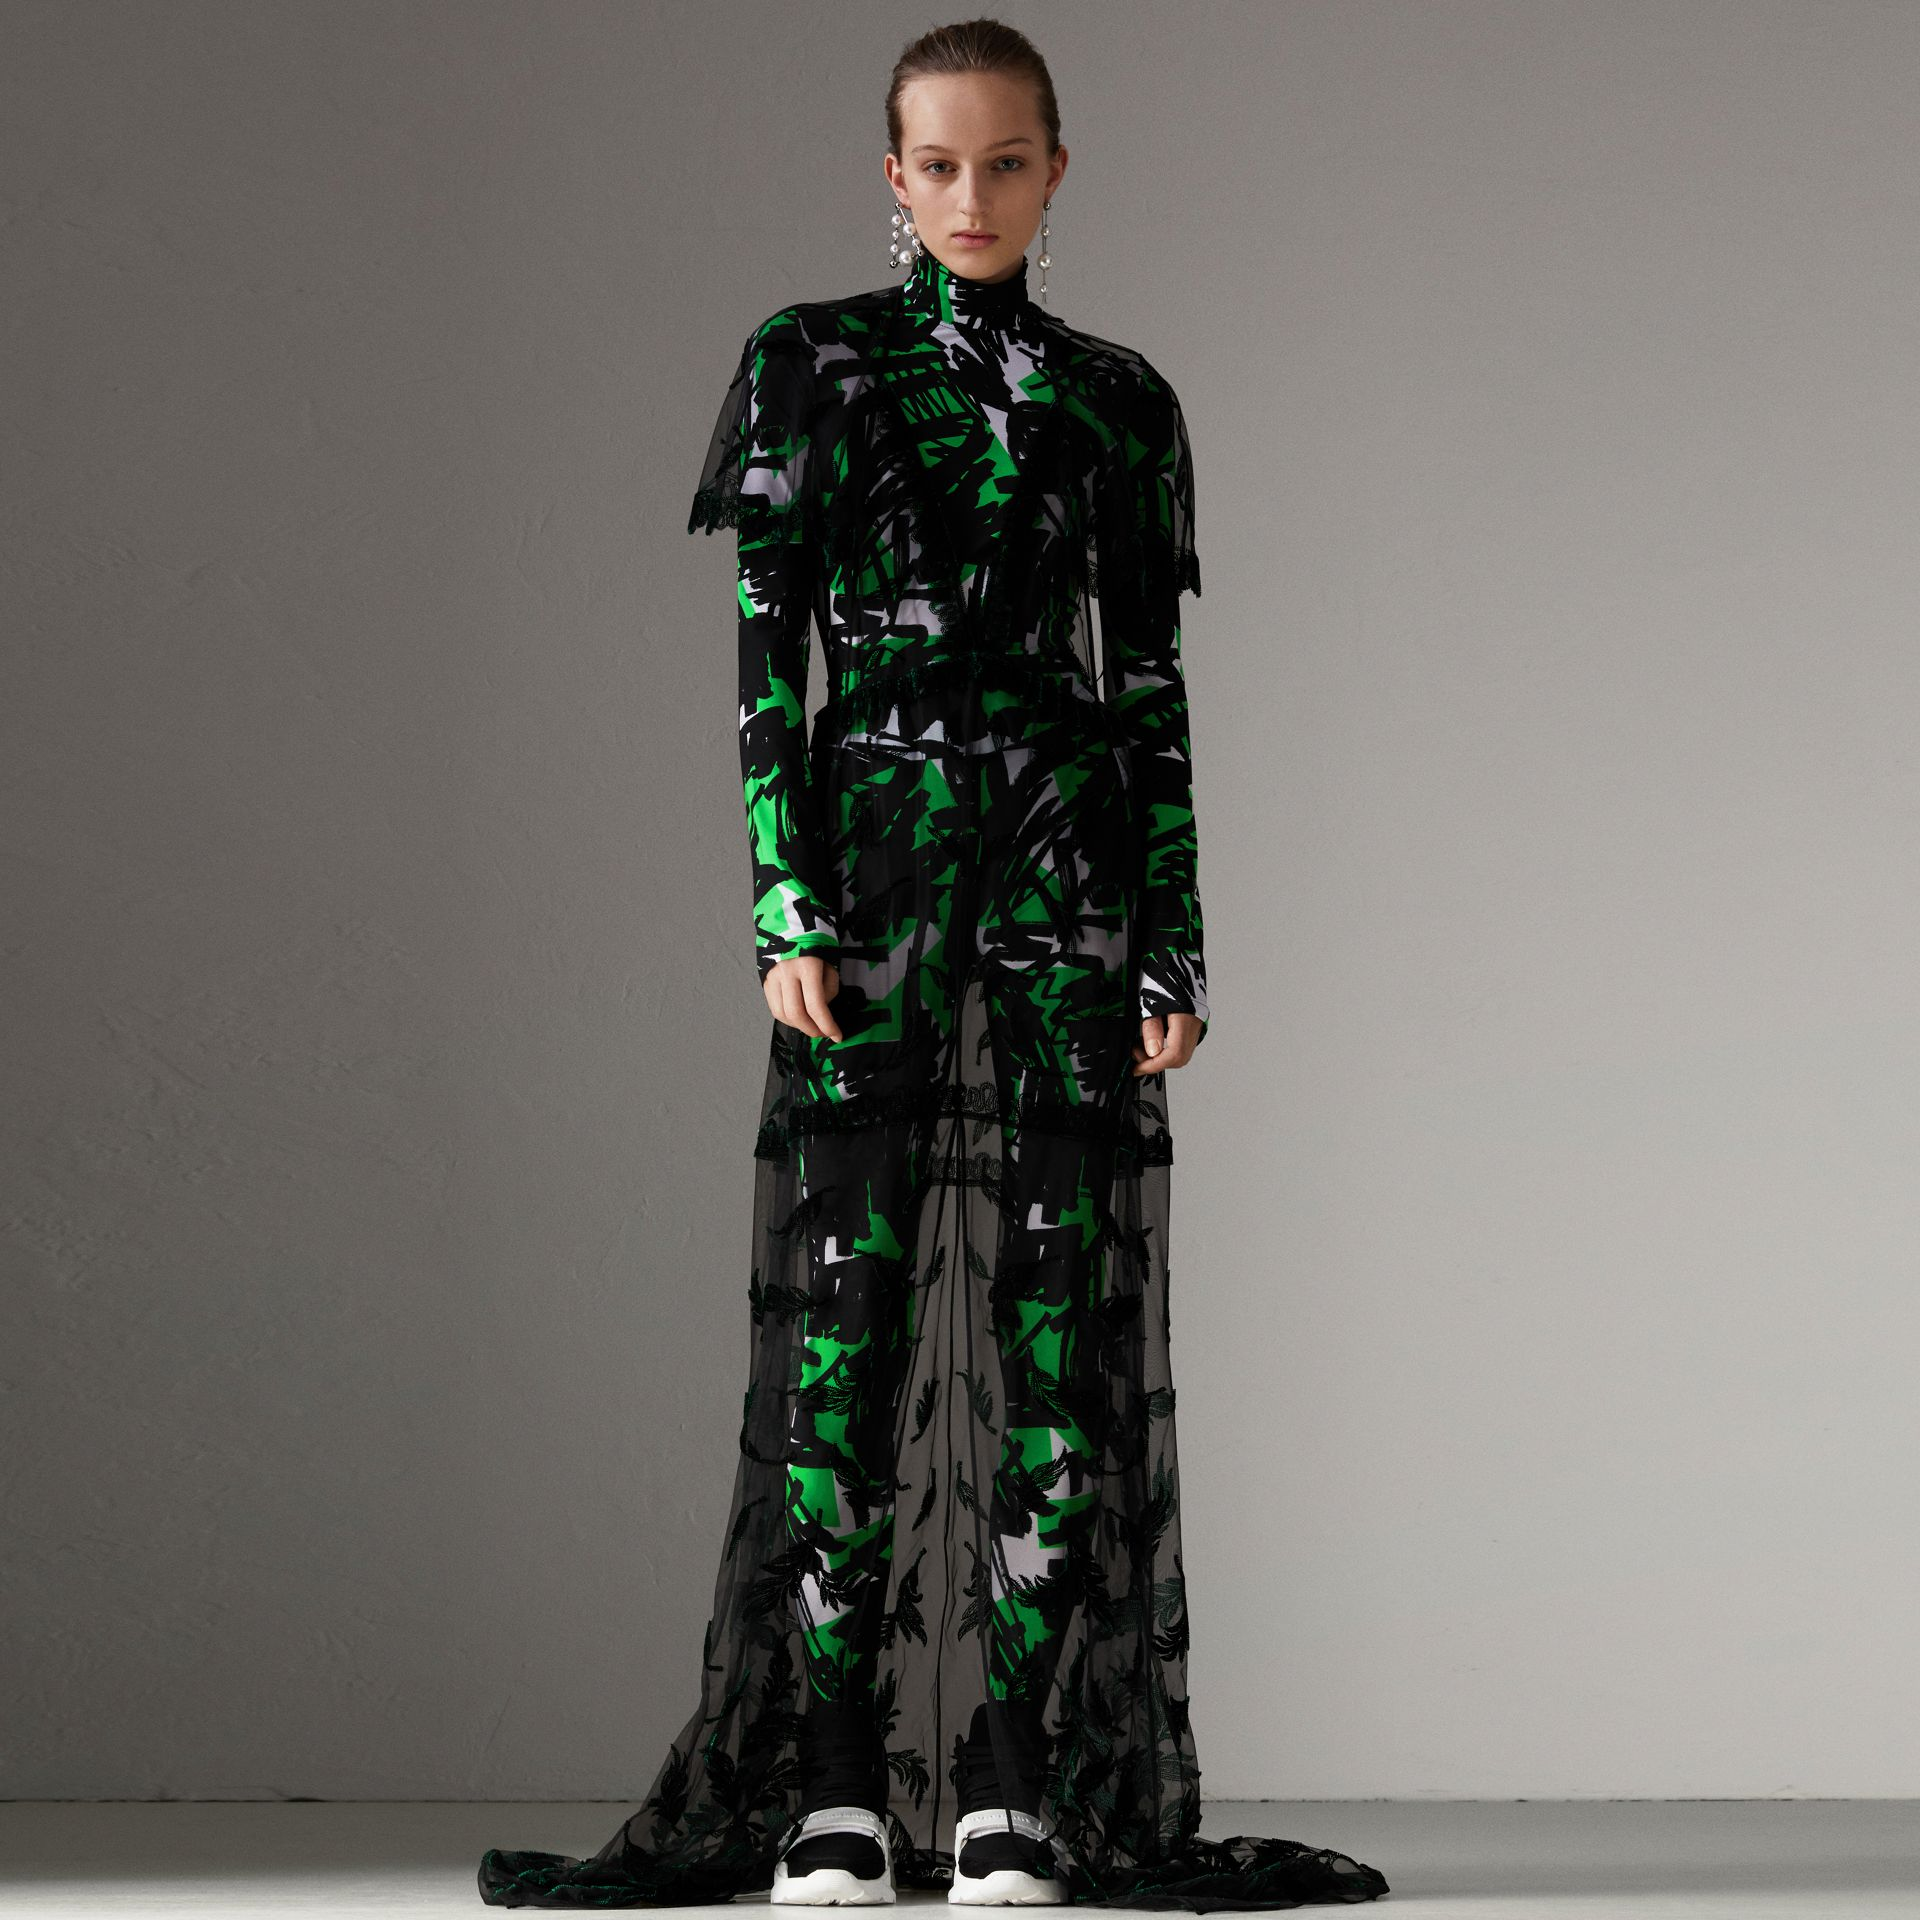 Graffiti Print Stretch Jersey Top in Neon Green - Women | Burberry United Kingdom - gallery image 0